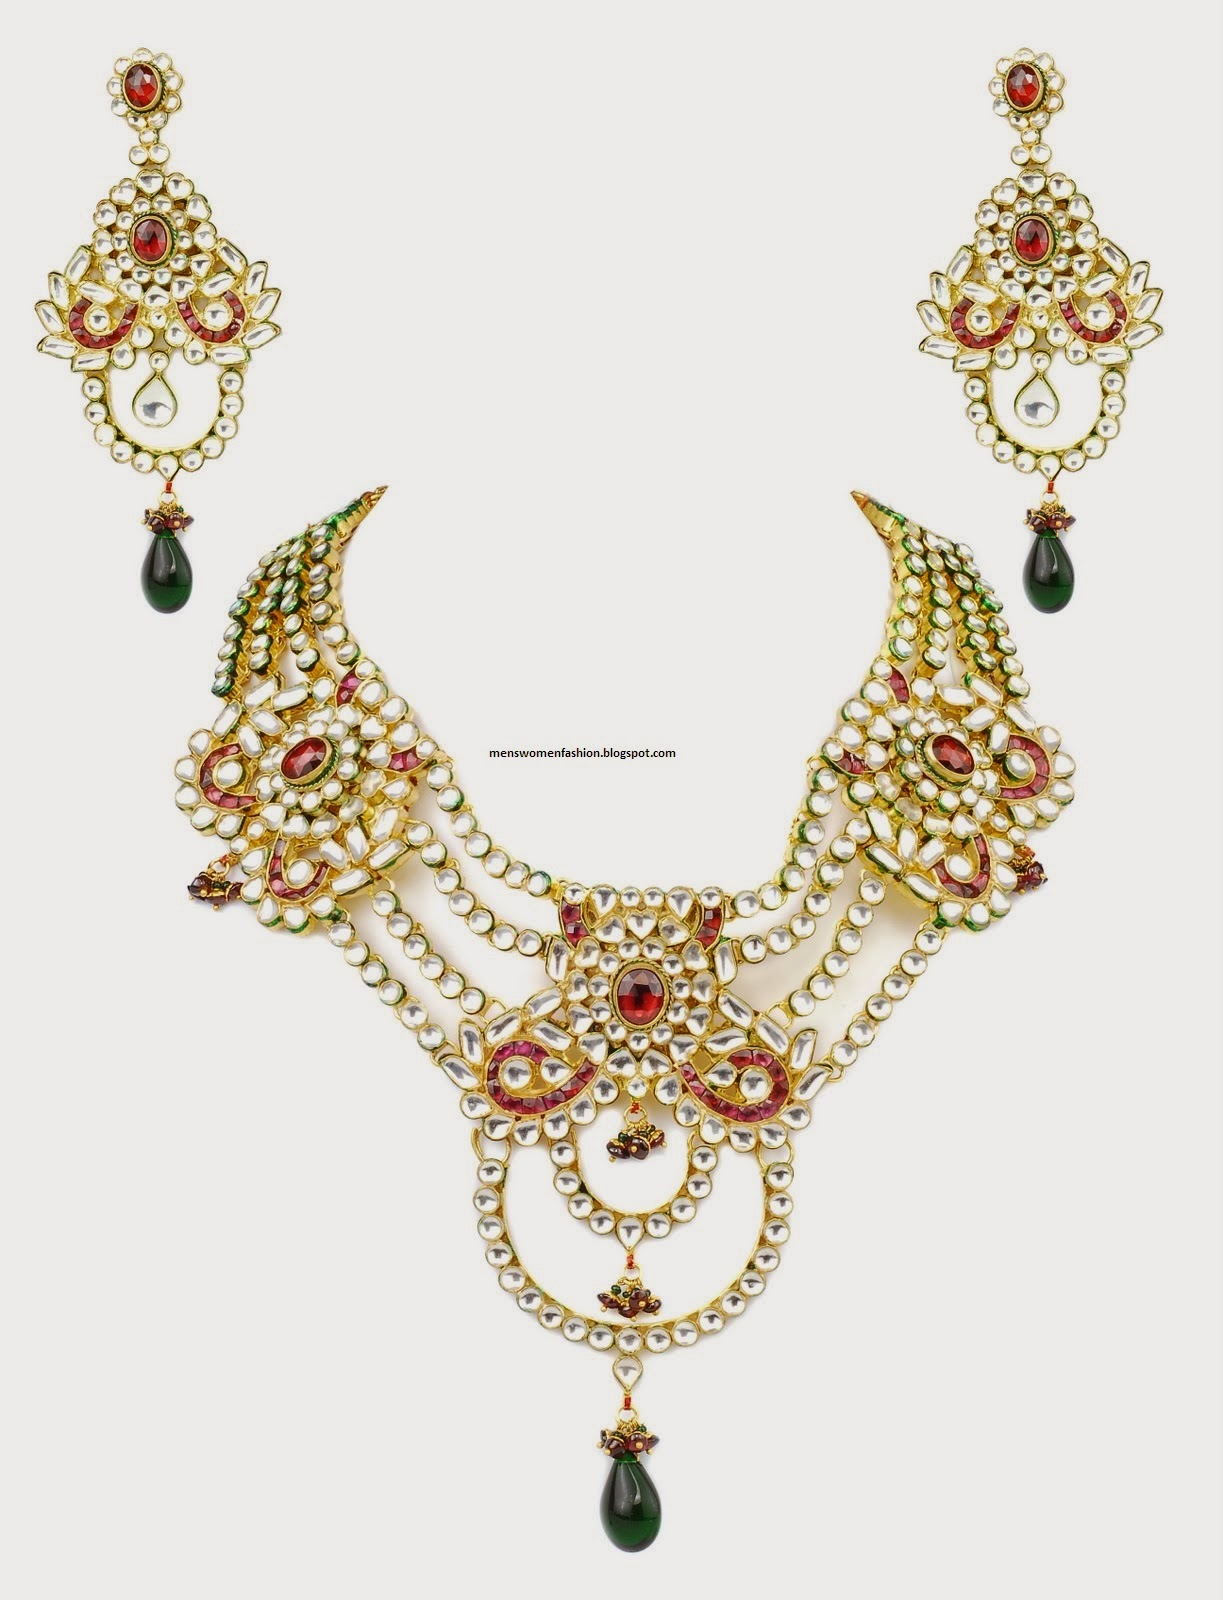 jewellery s blog didi customs indian wardrobe traditions jewelry and holds many fashion costume